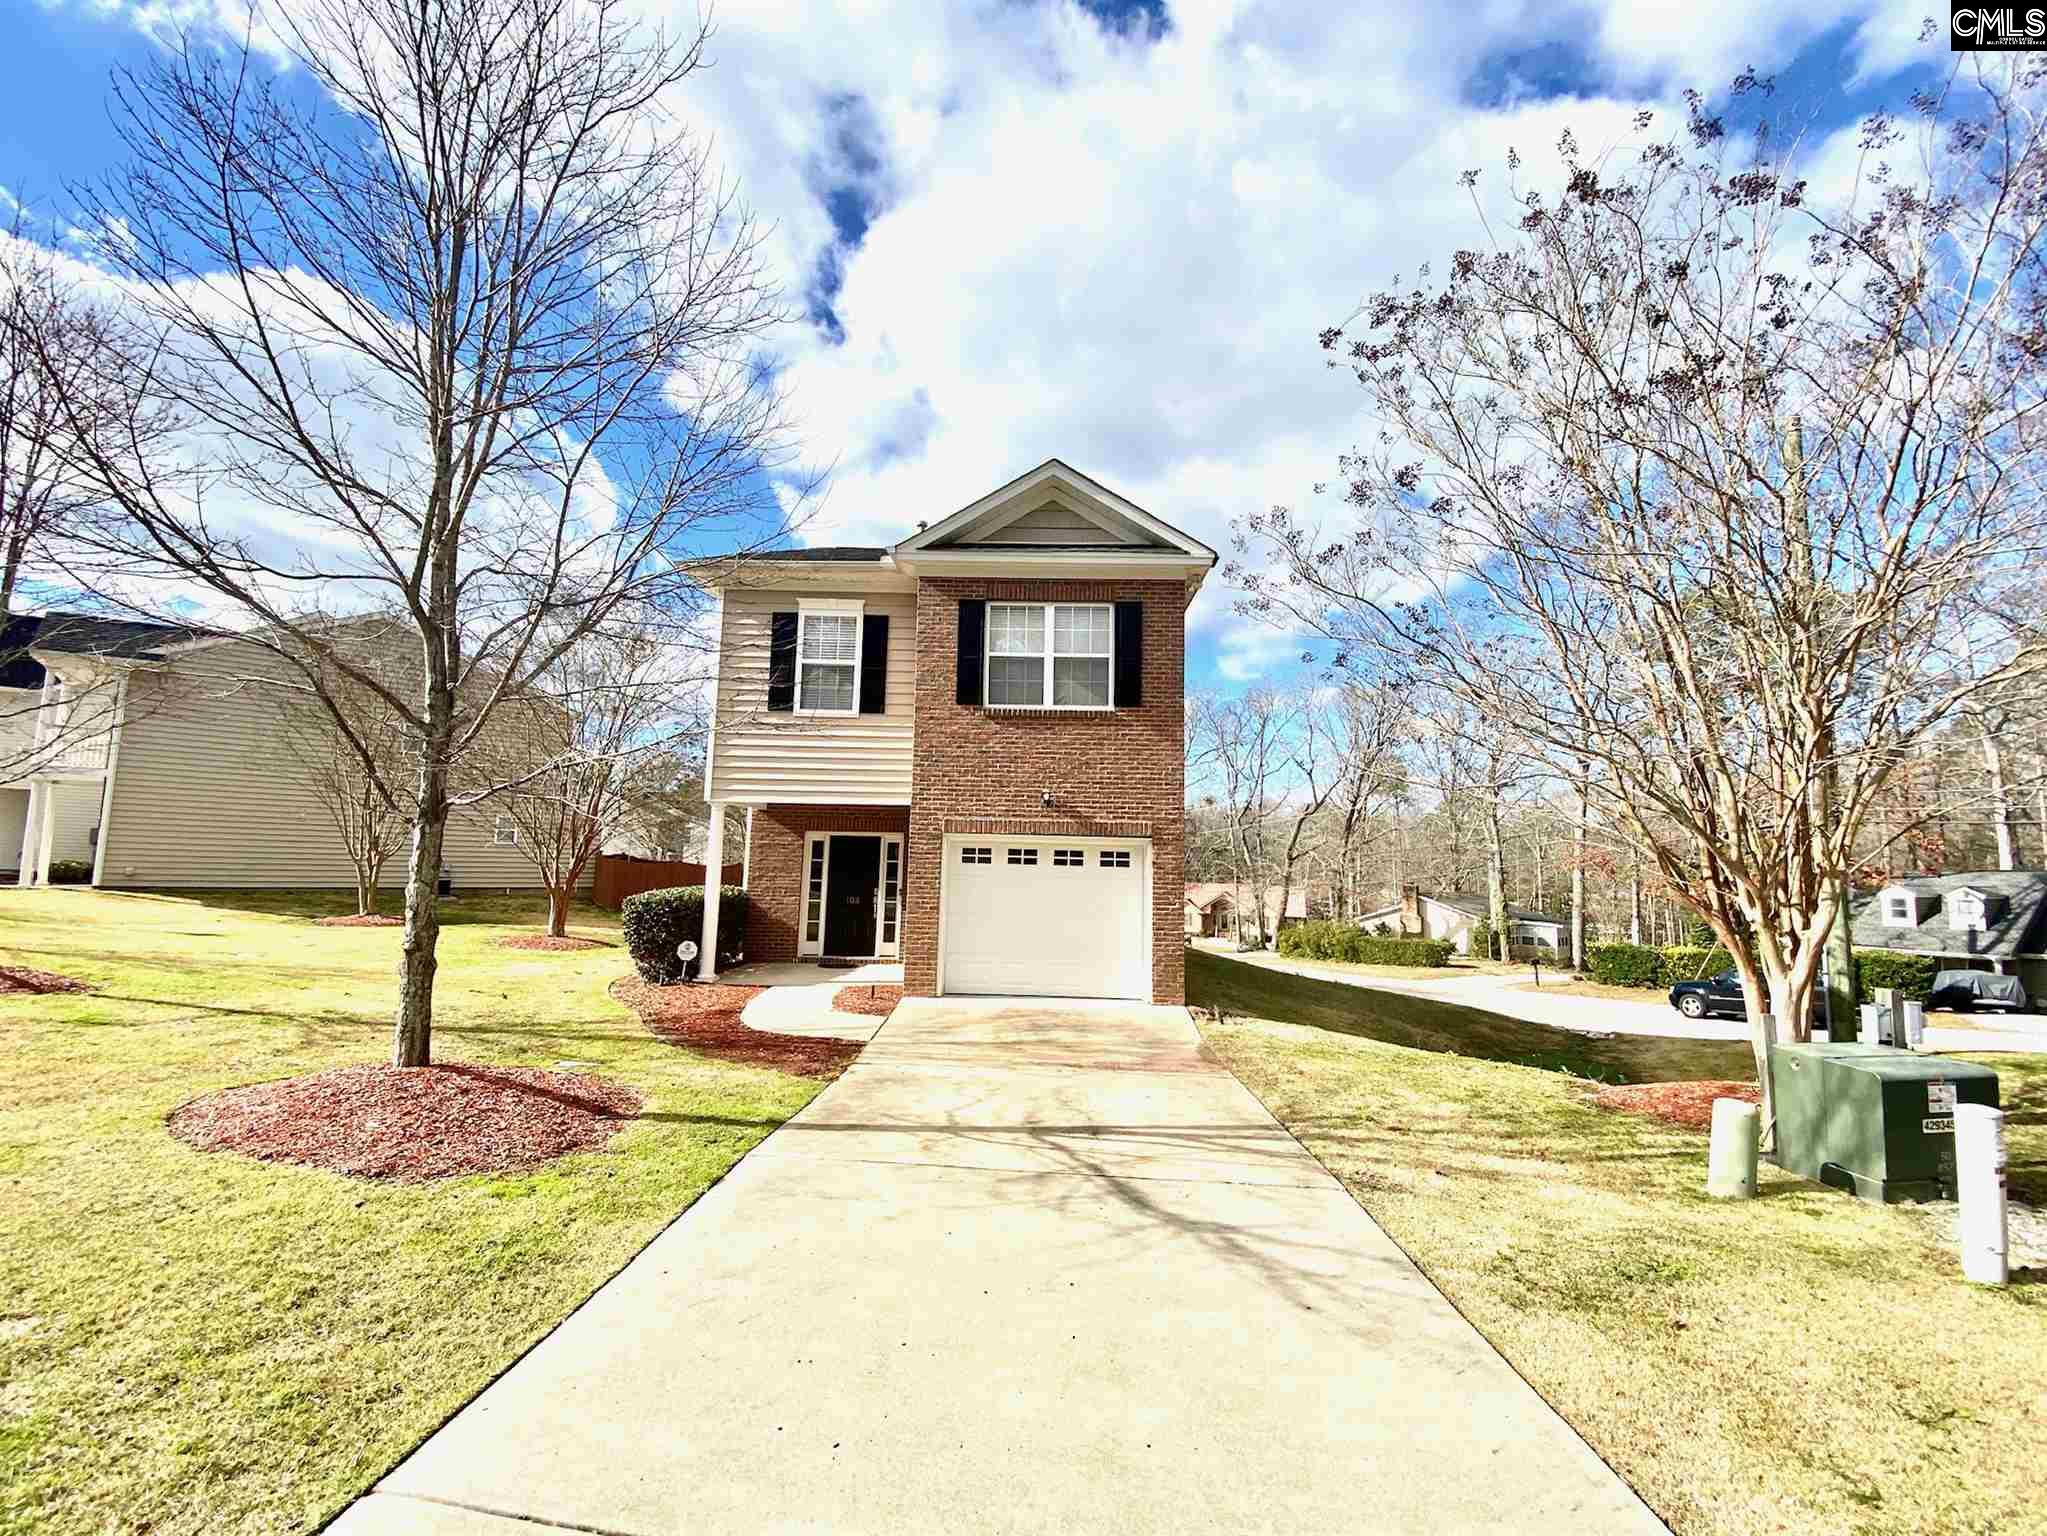 108 Park Ridge Lexington, SC 29072-1824